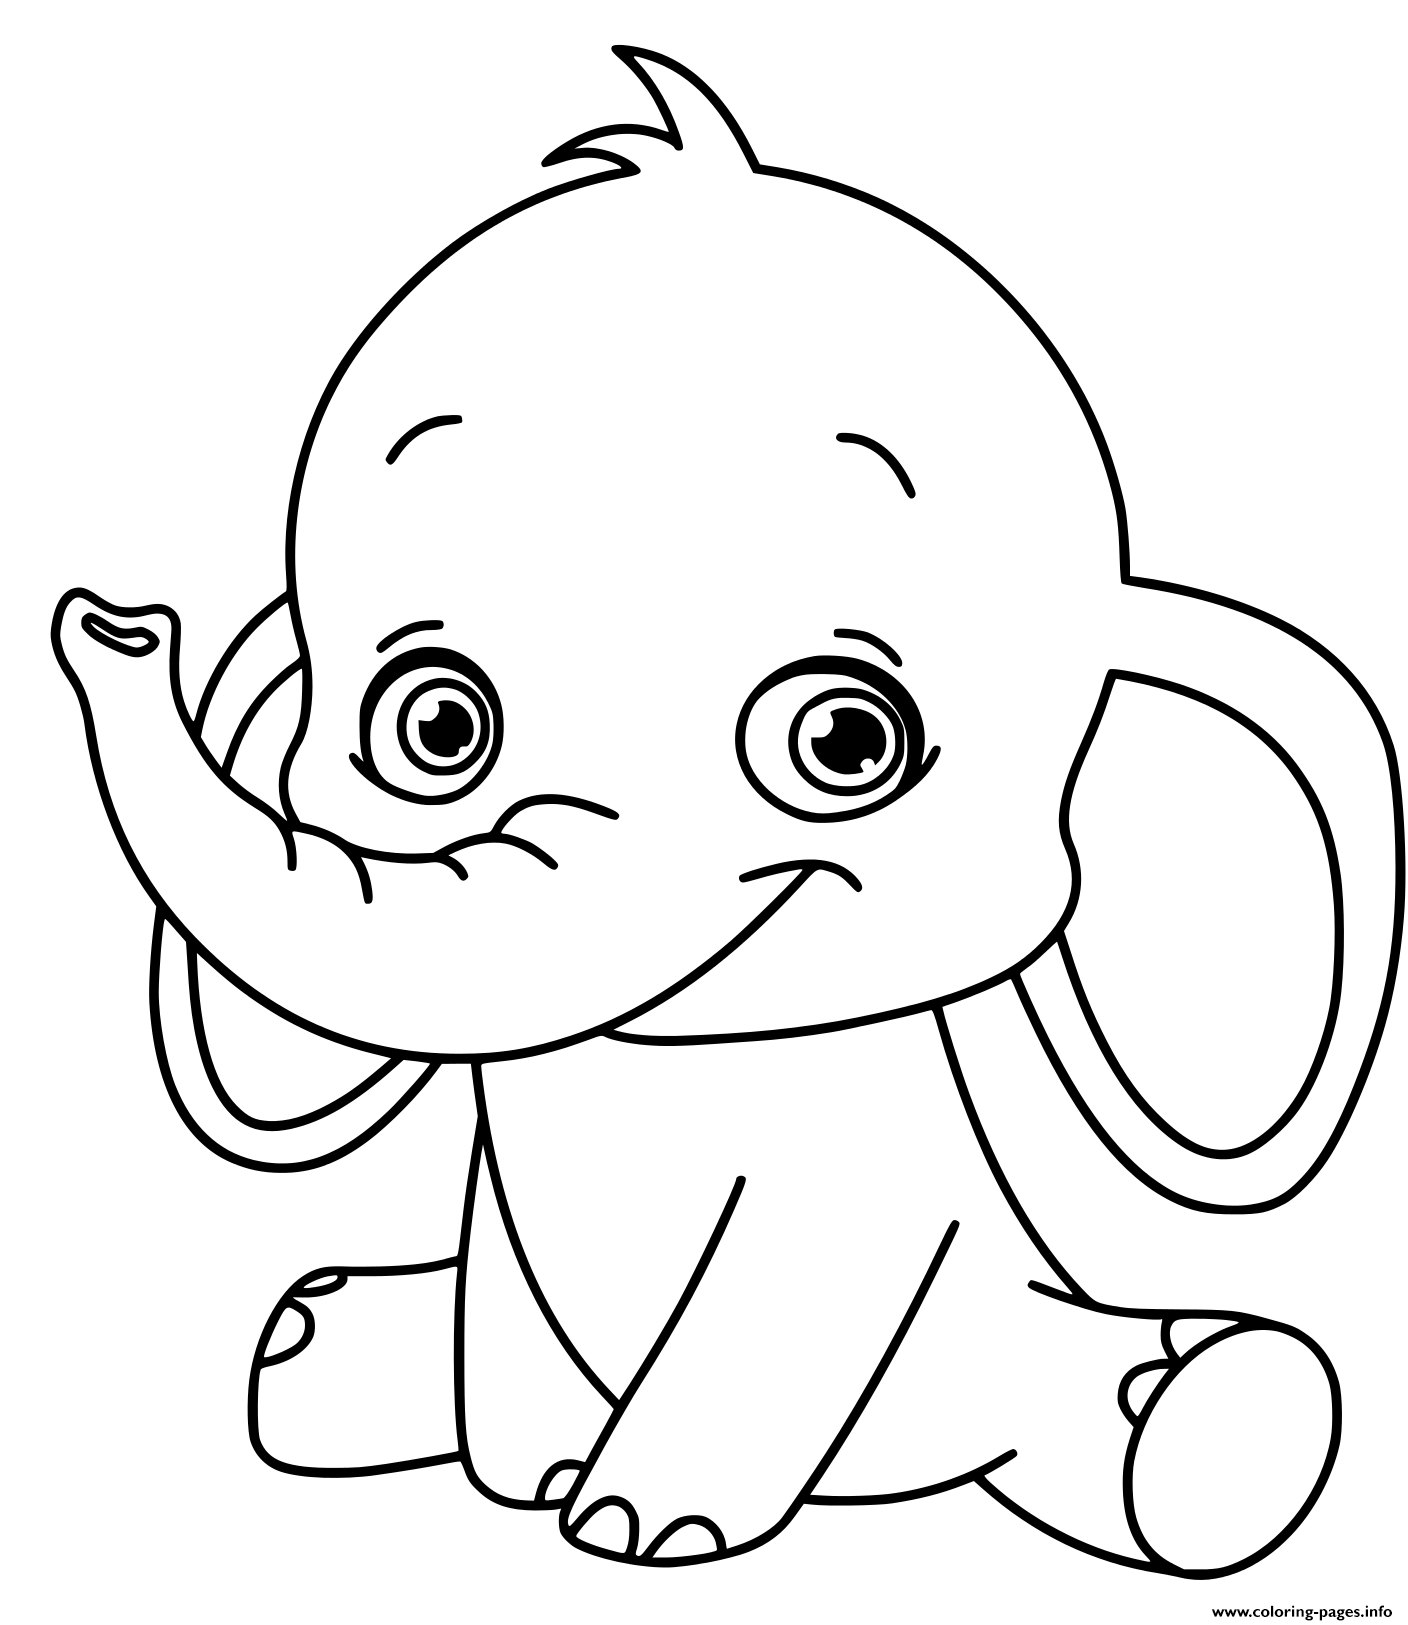 Baby Elephant Kids Coloring Pages Printable